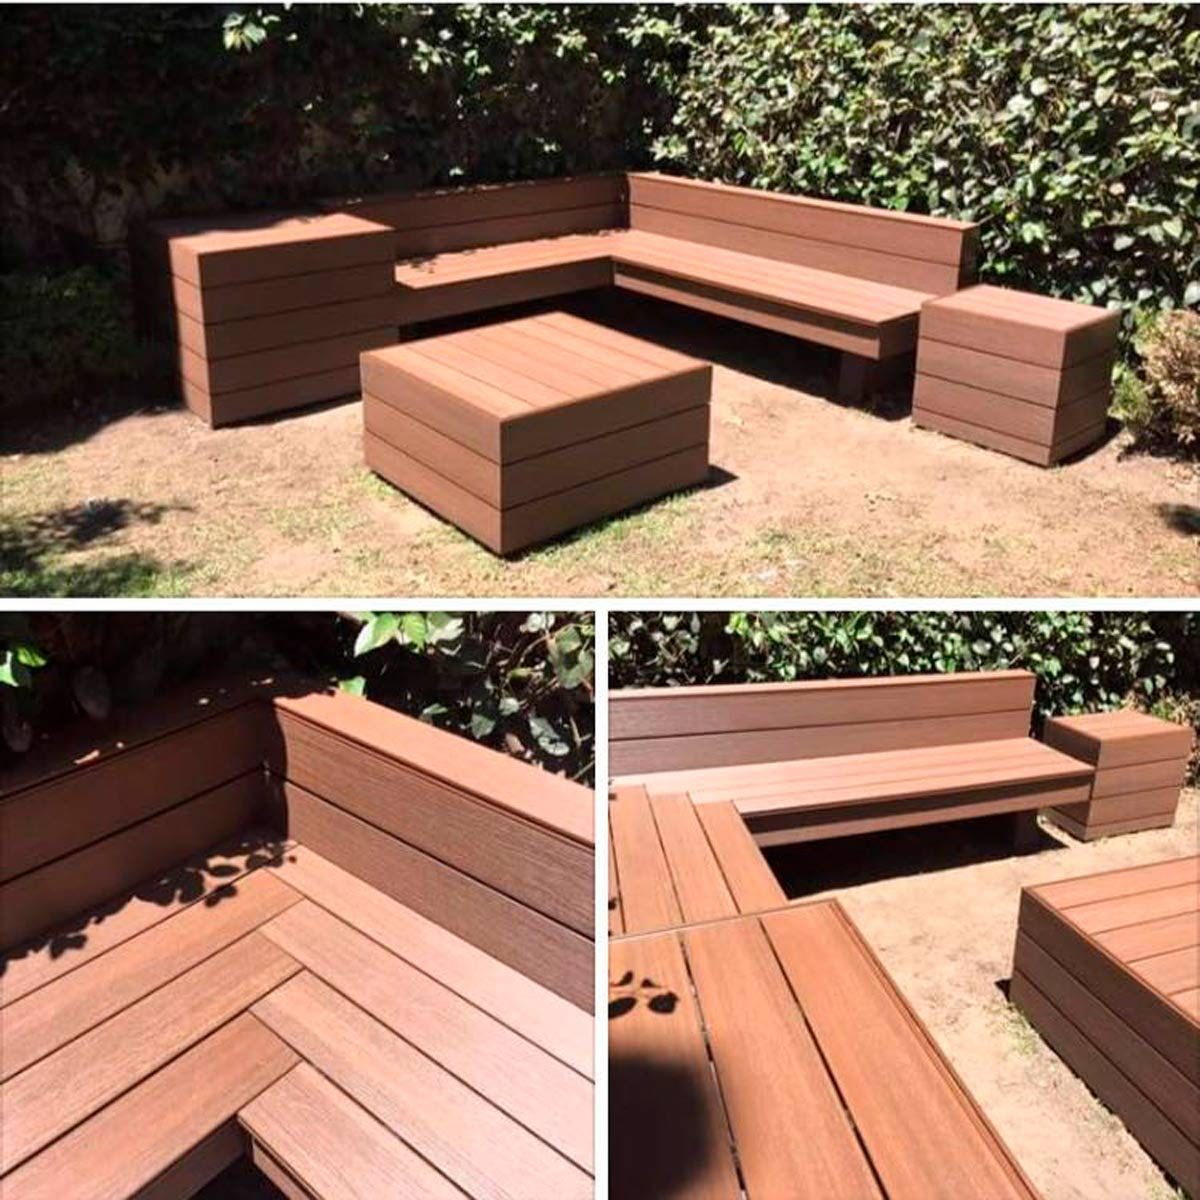 10 Outdoor Projects You Can Build With Composite Decking